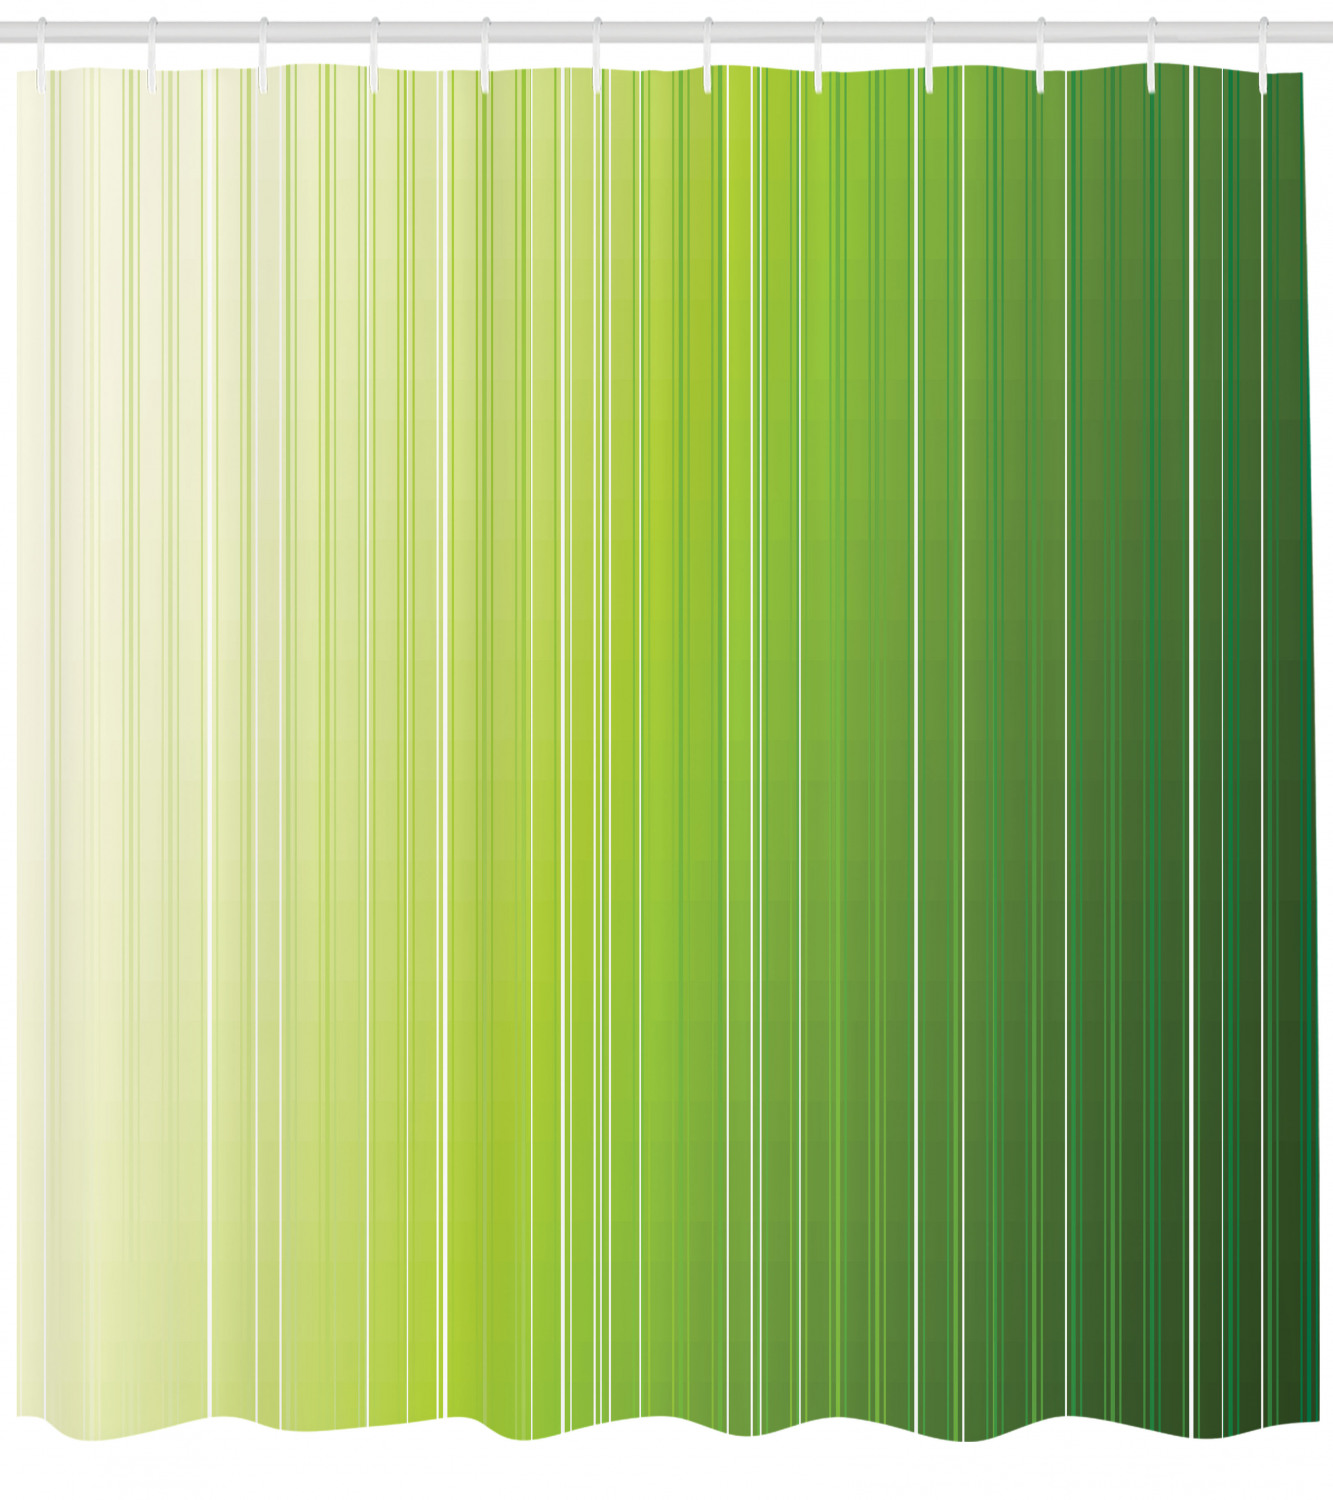 Sage Shower Curtain Ombre Style Composition With Color Shades And Vertical Digital Stripes Fabric Bathroom Set With Hooks 69w X 70l Inches Green